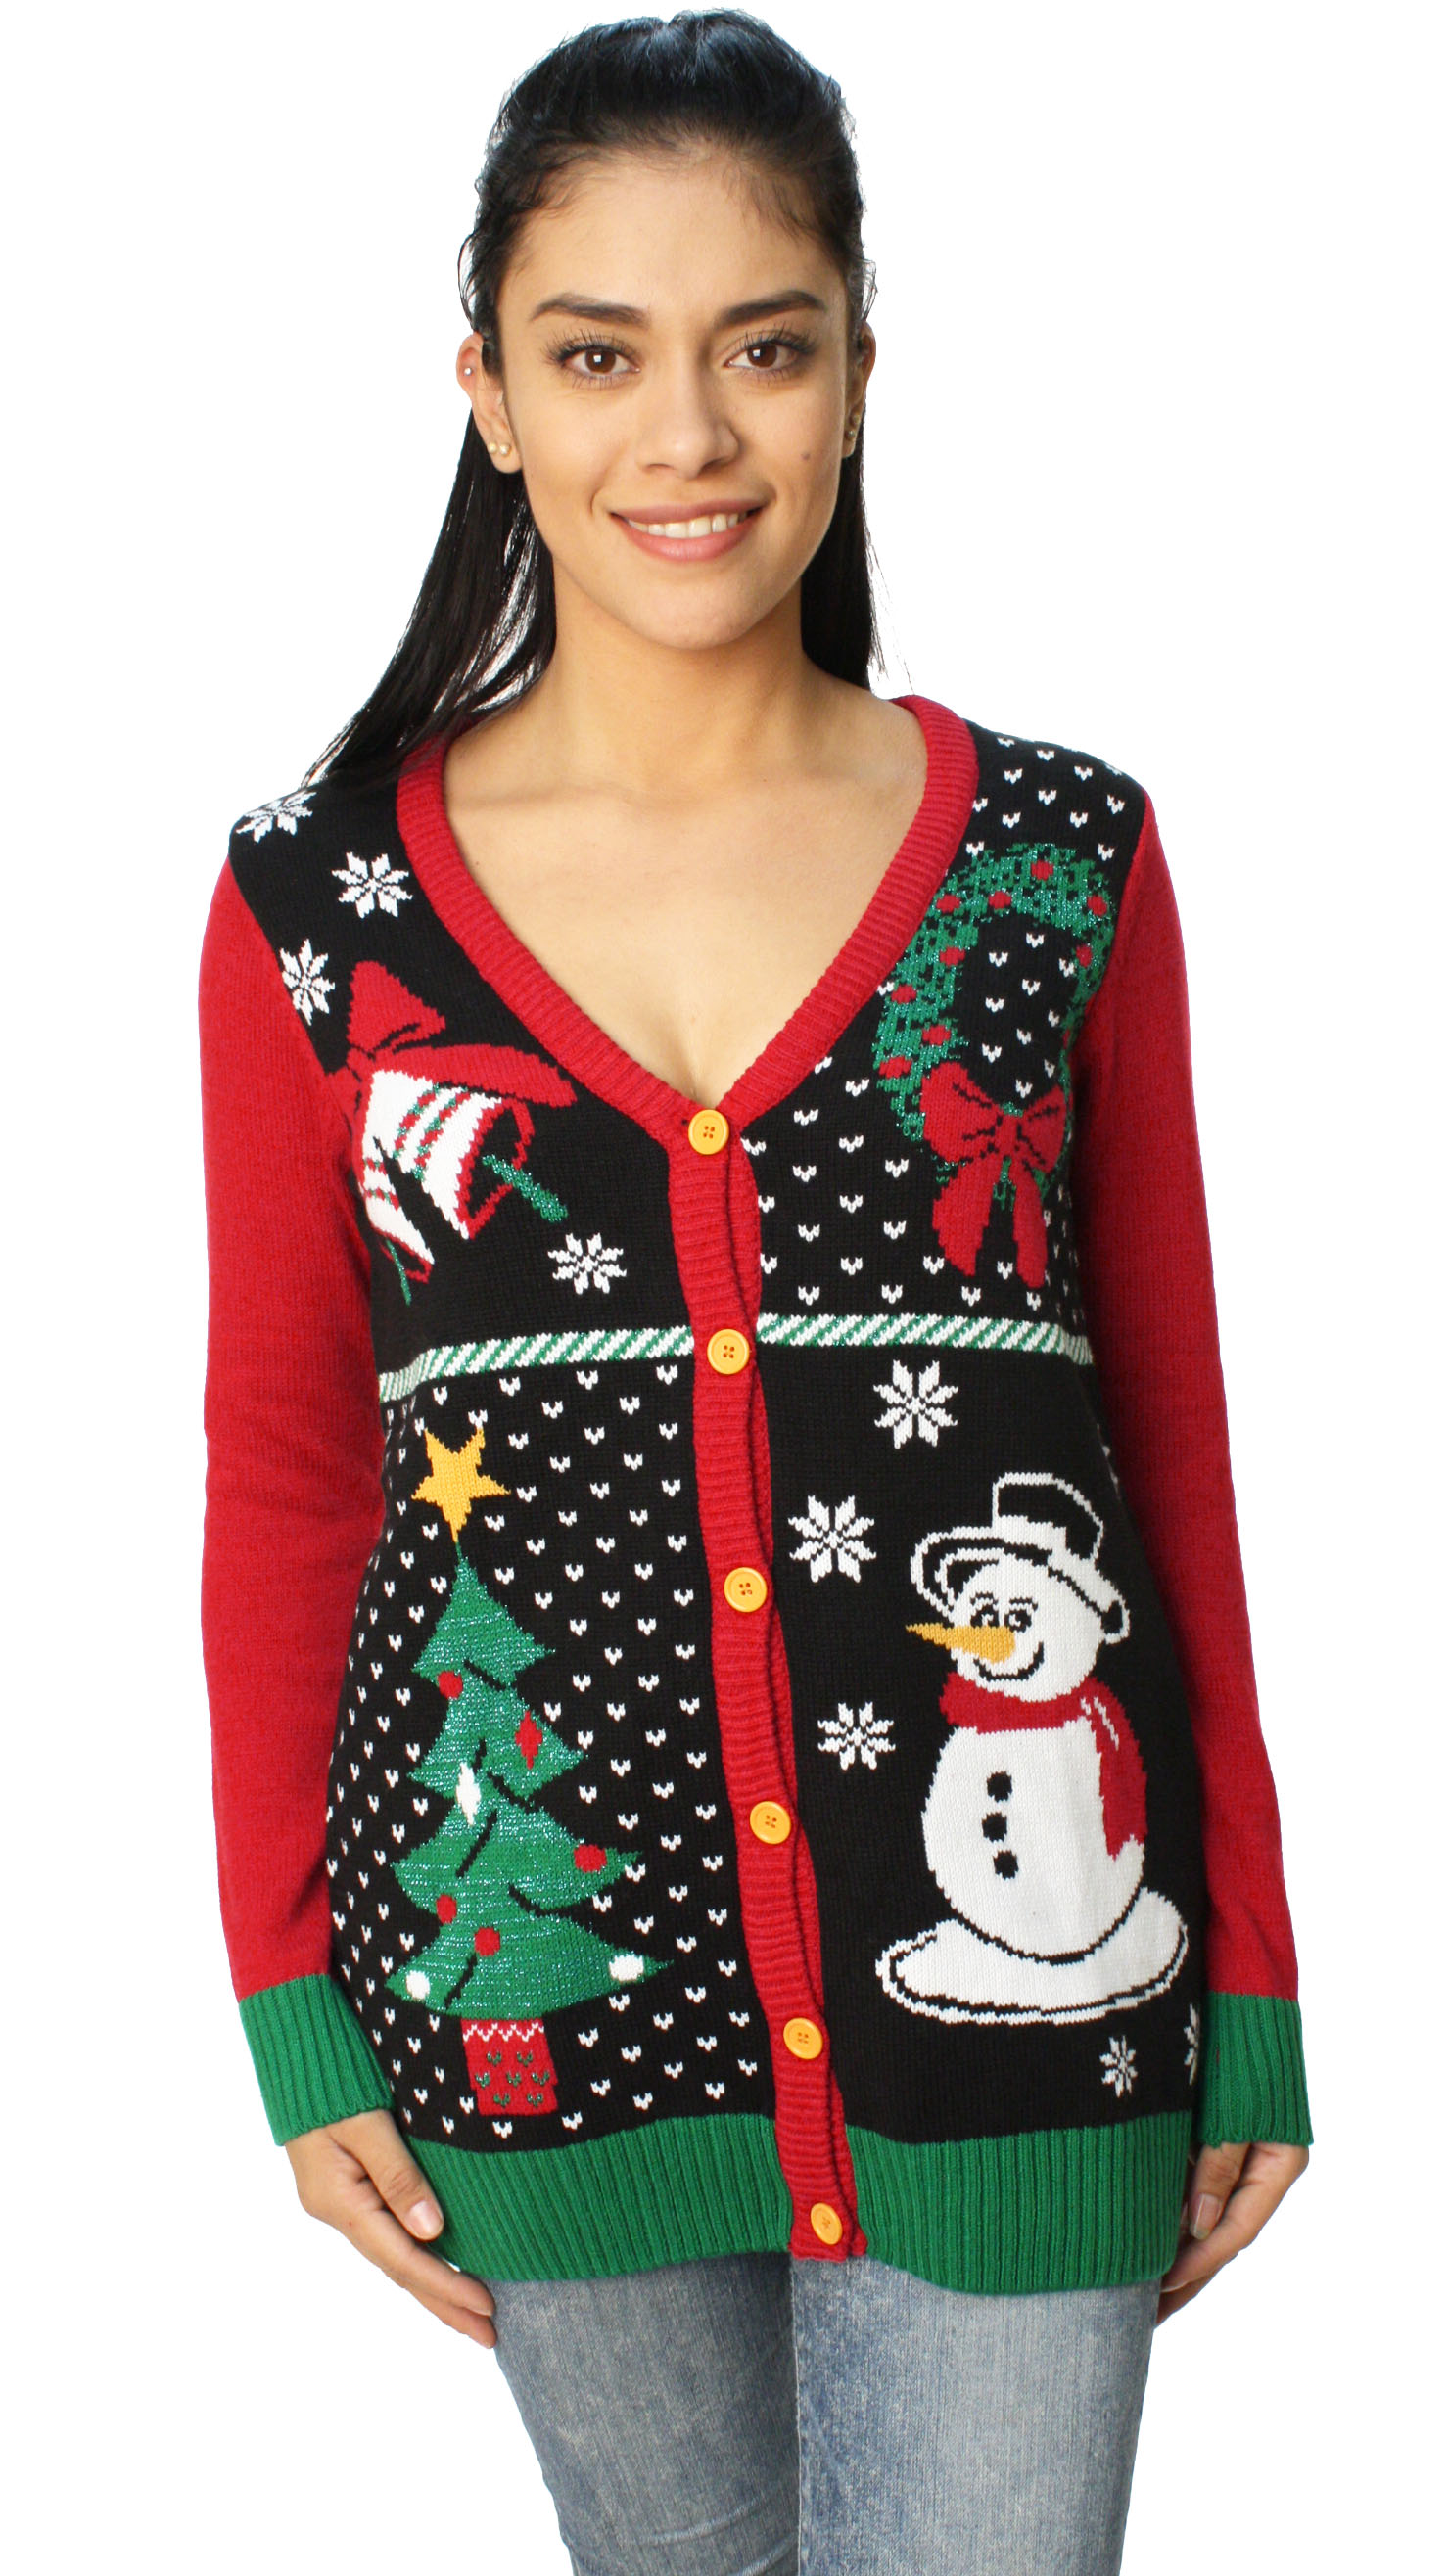 Ugly Christmas Sweater Women S Button Down Snowman Cardigan Sweater